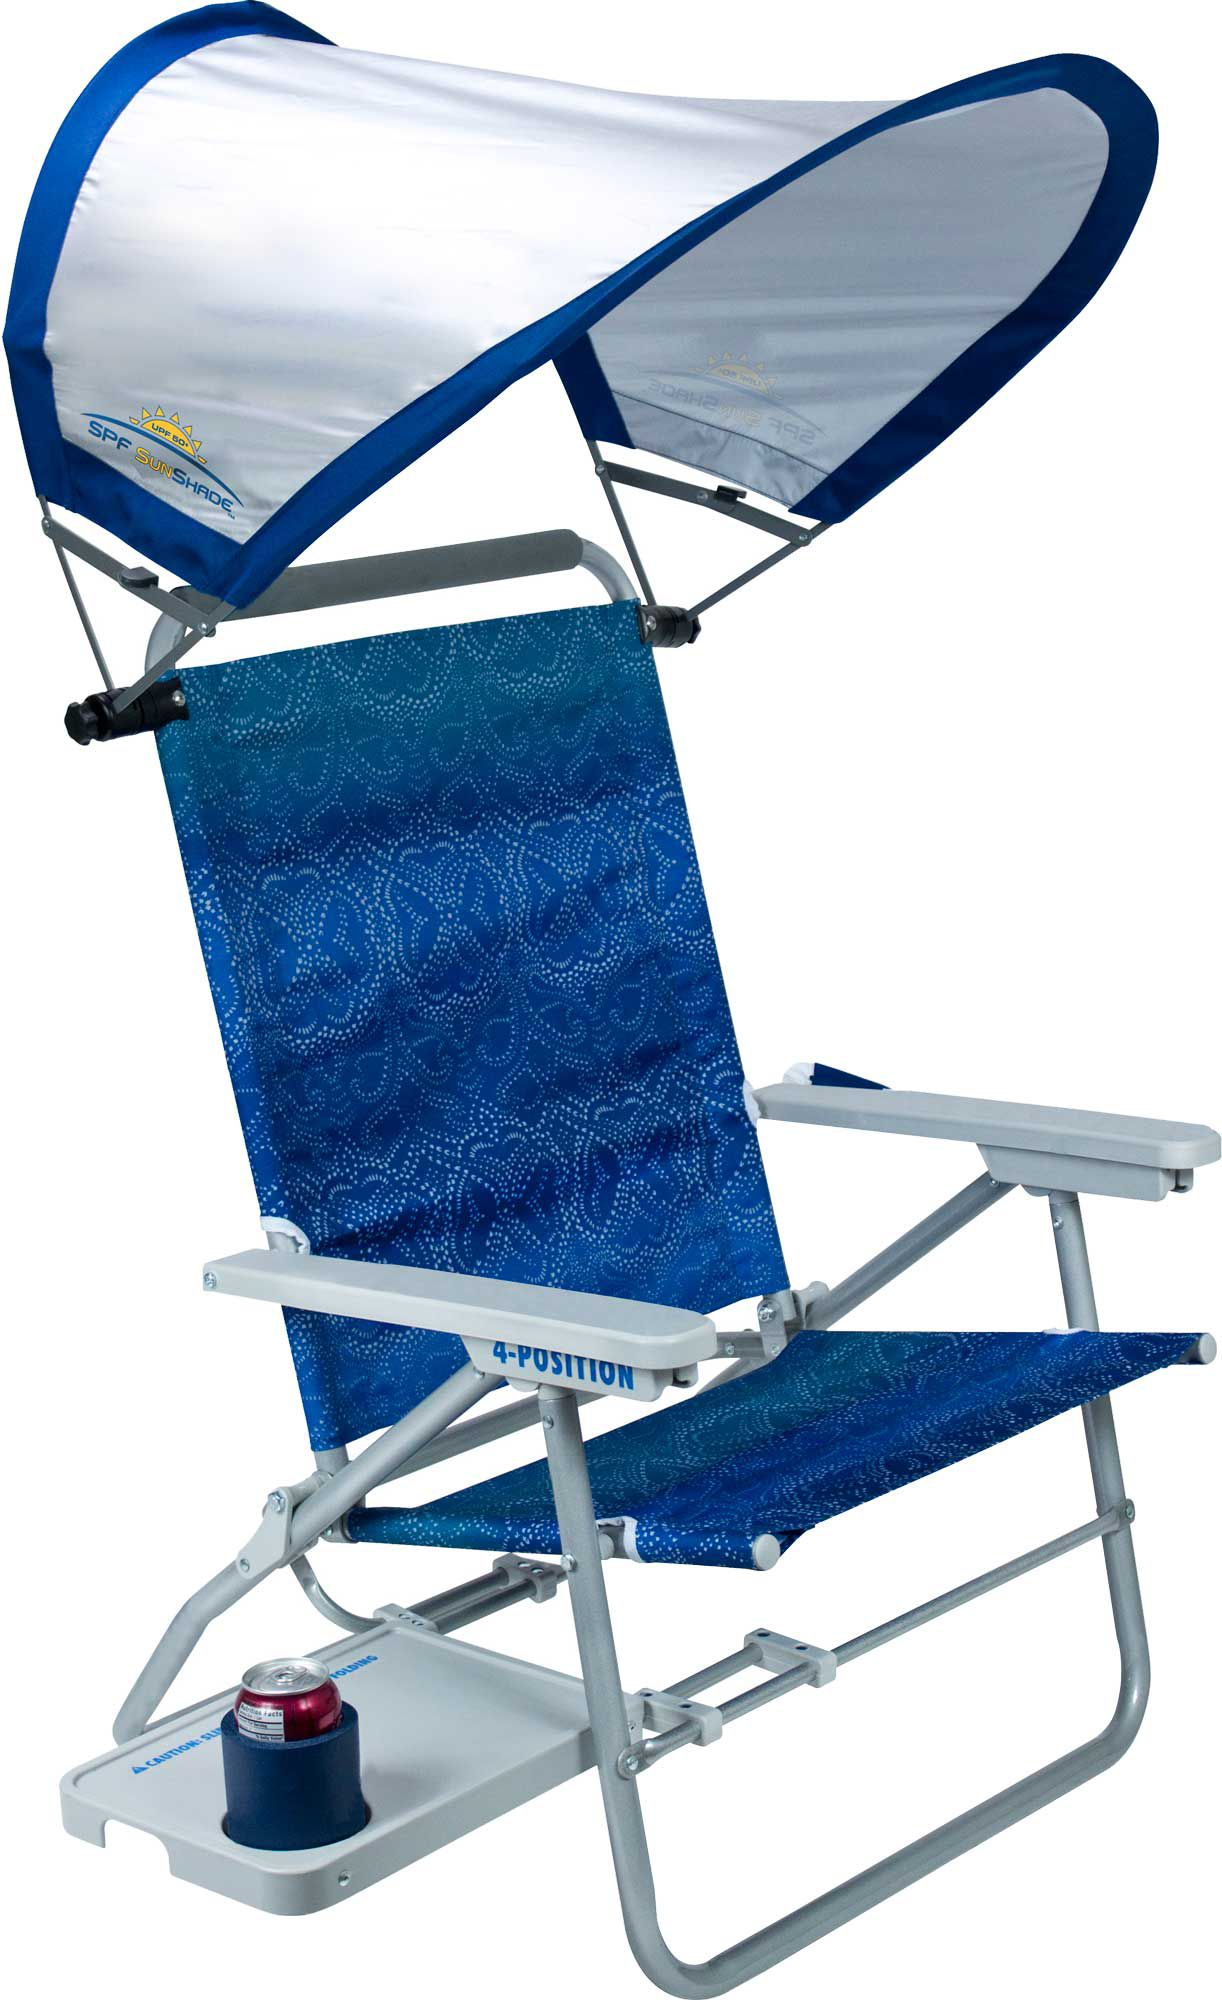 beach chairs with shade drafting table staples coverage camping best price guarantee at dick s product image gci waterside big surf chair sunshade